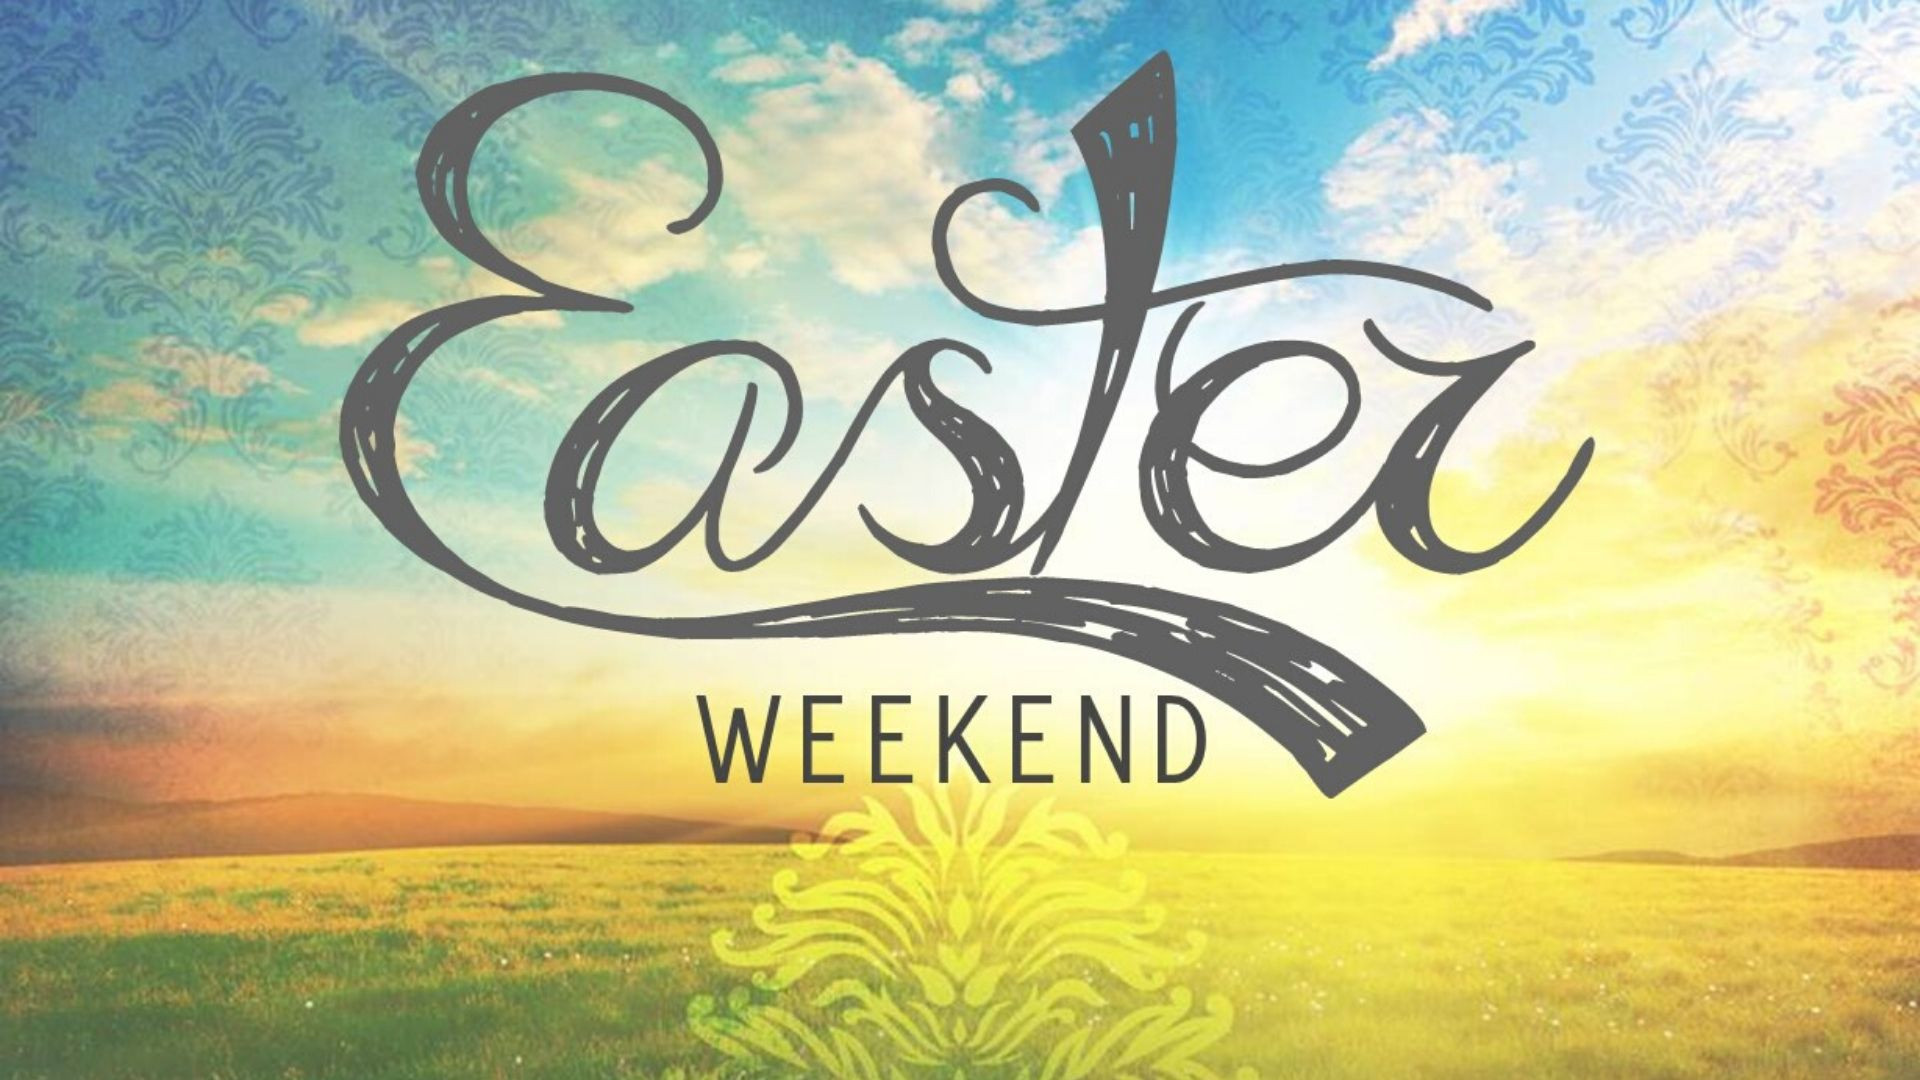 Easter Weekend - Generic